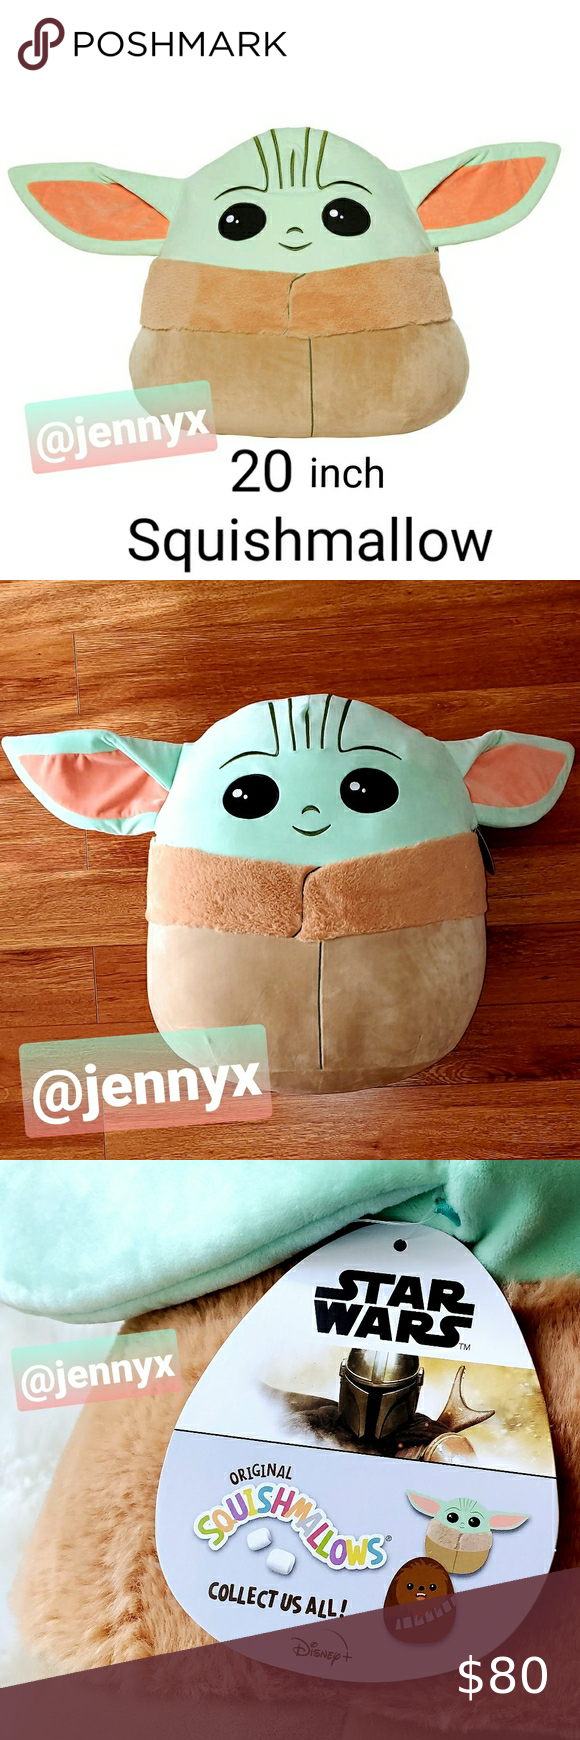 20in Squishmallow Baby Yoda The Child Star Wars Build A Bear Outfits Doll Sleeping Bag American Girl Clothes